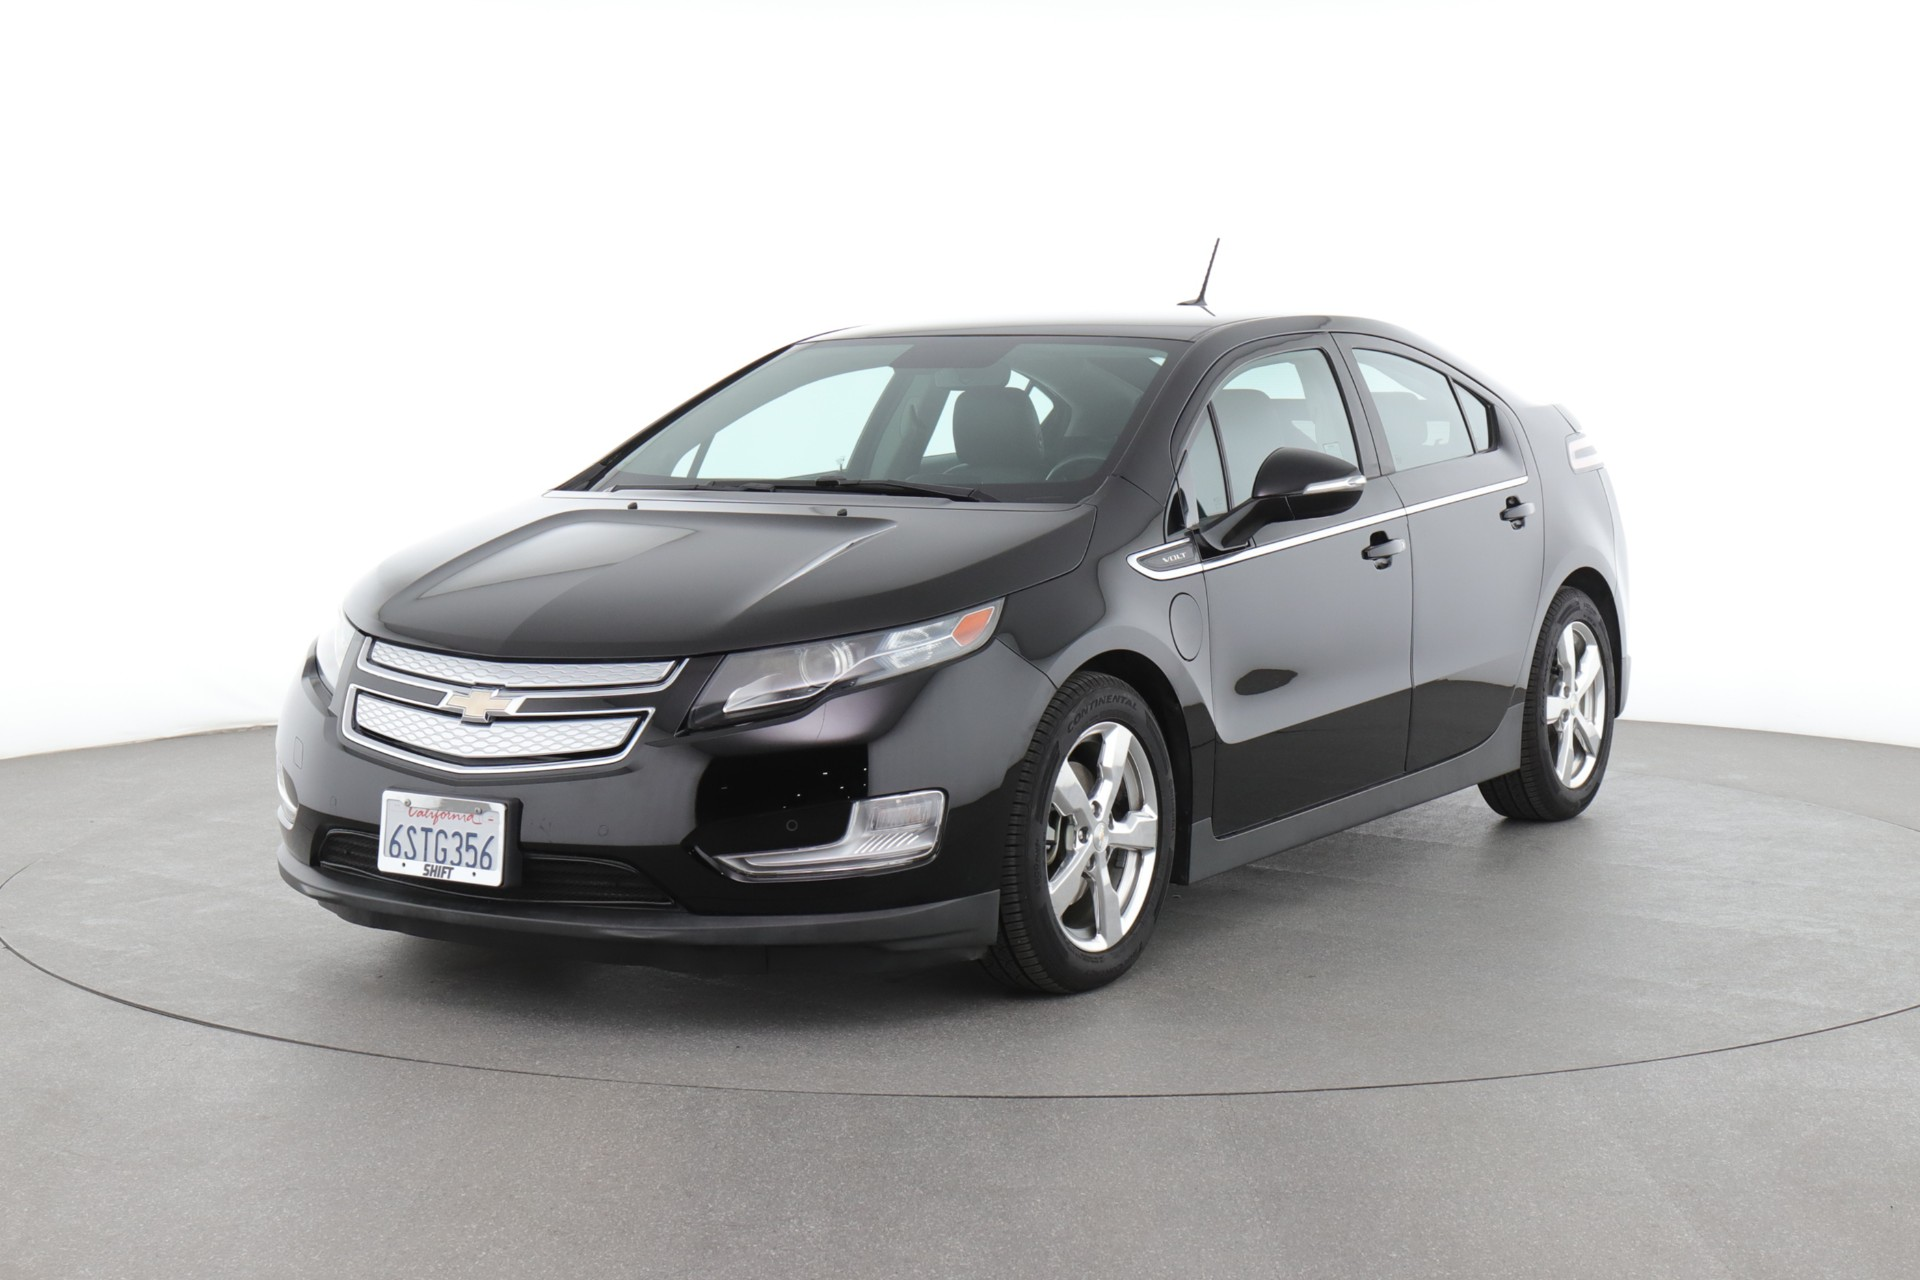 2011 Chevrolet Volt (from $11,350)